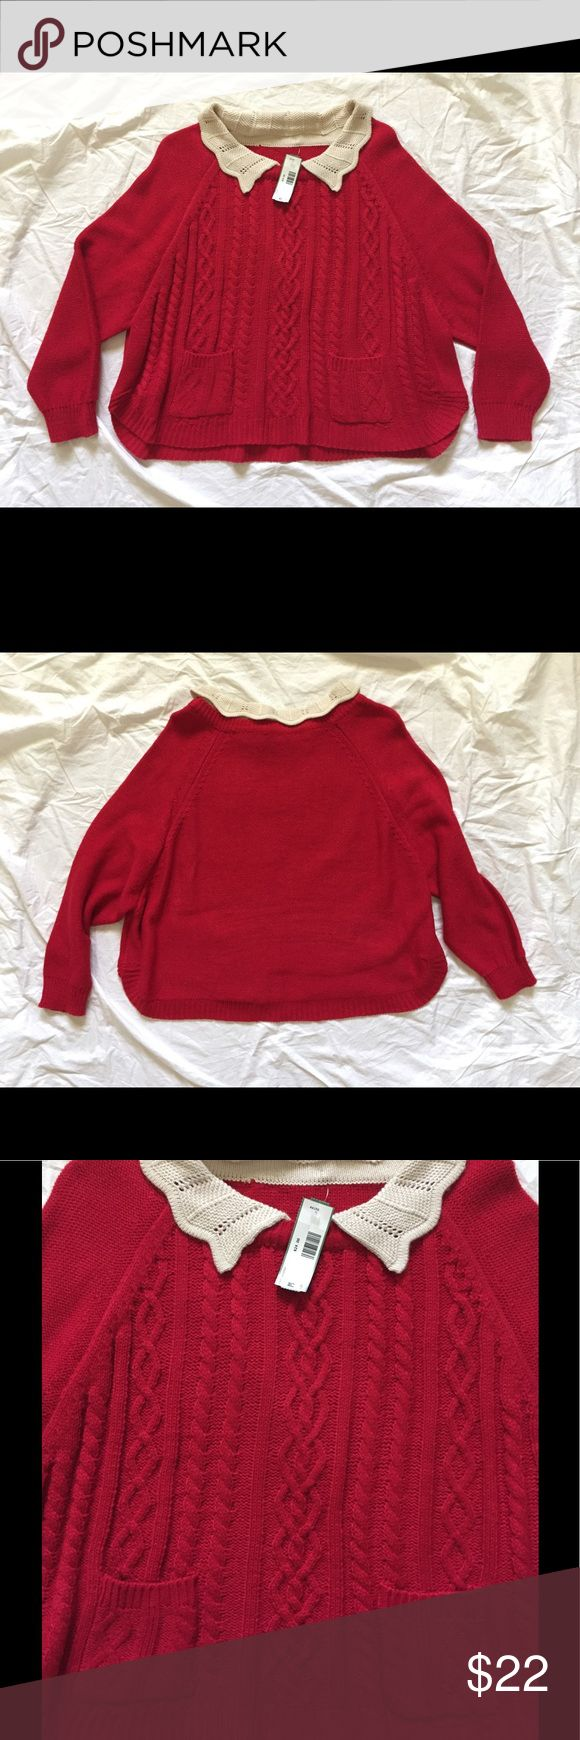 Peter Pan Collar Knit Sweater Bright candy apple red knit sweater with cream collar. Swing style with batwing sleeves. Size marked M, can work for M/L imo. Front has cable-knit pattern and two small pockets. So cute but too big for me so letting it go. Tops